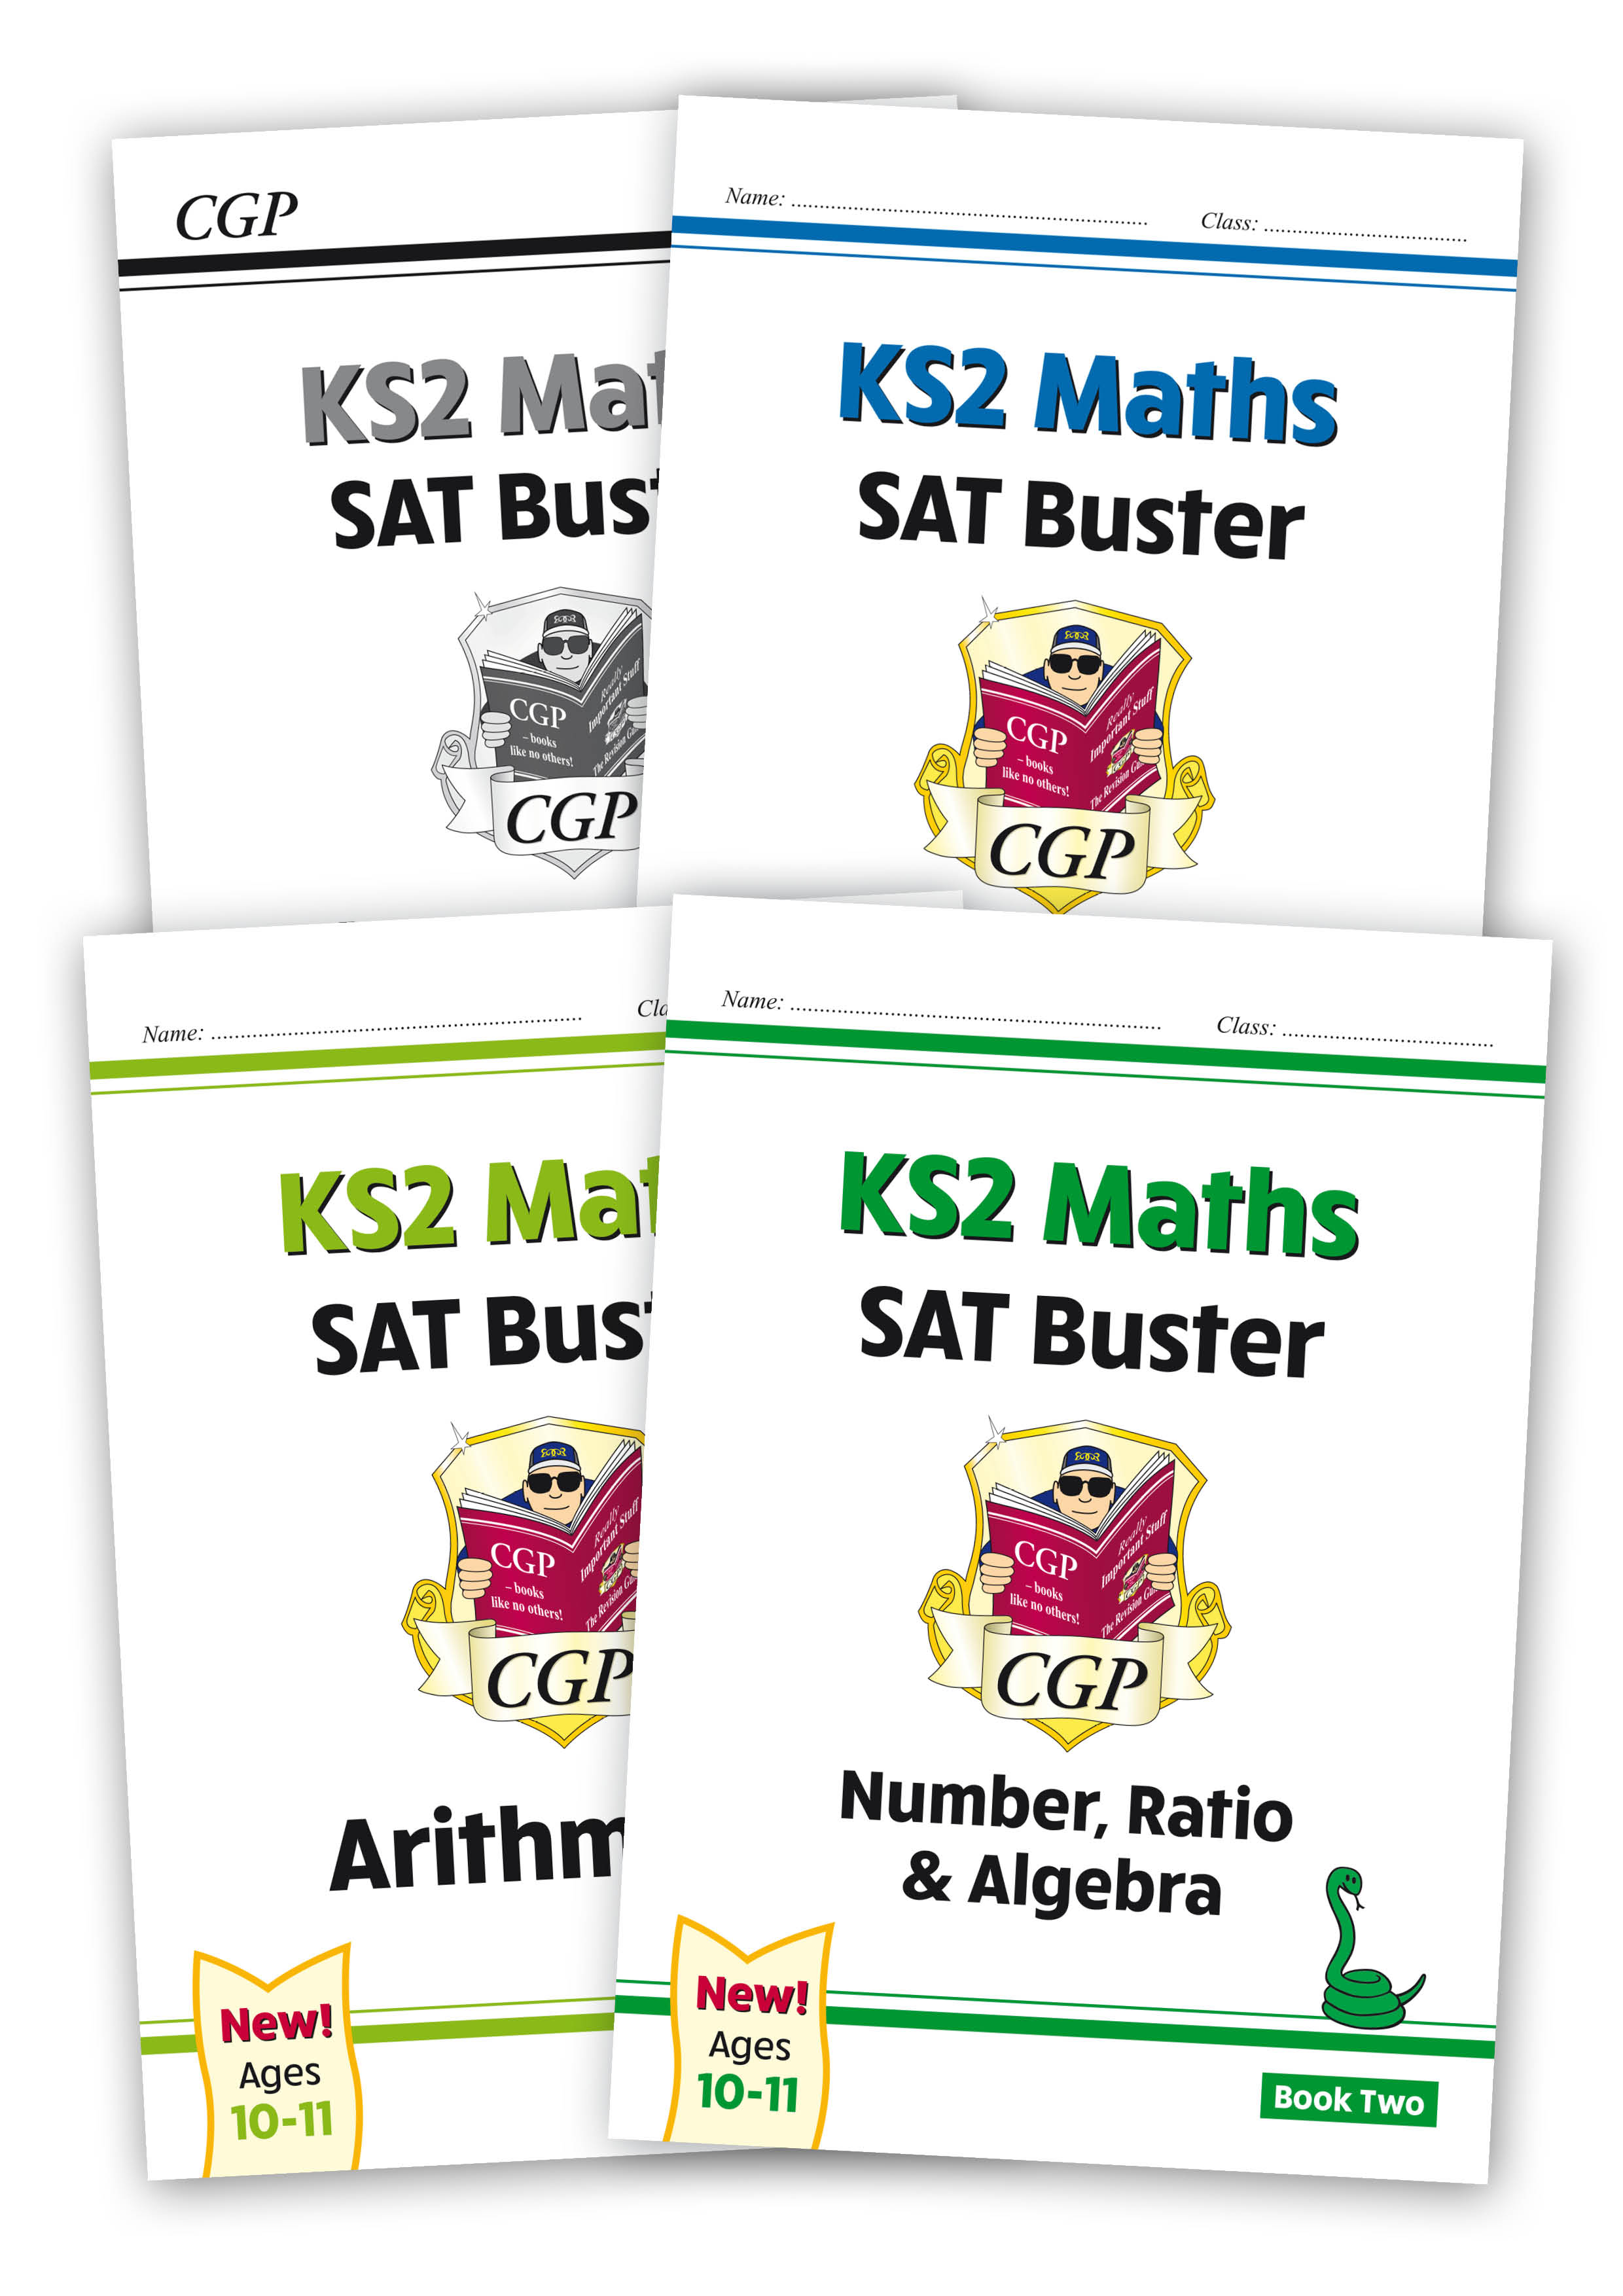 M6SBB222 - New KS2 Maths SAT Buster Book 2 Bundle - includes answers (for the 2021 tests)